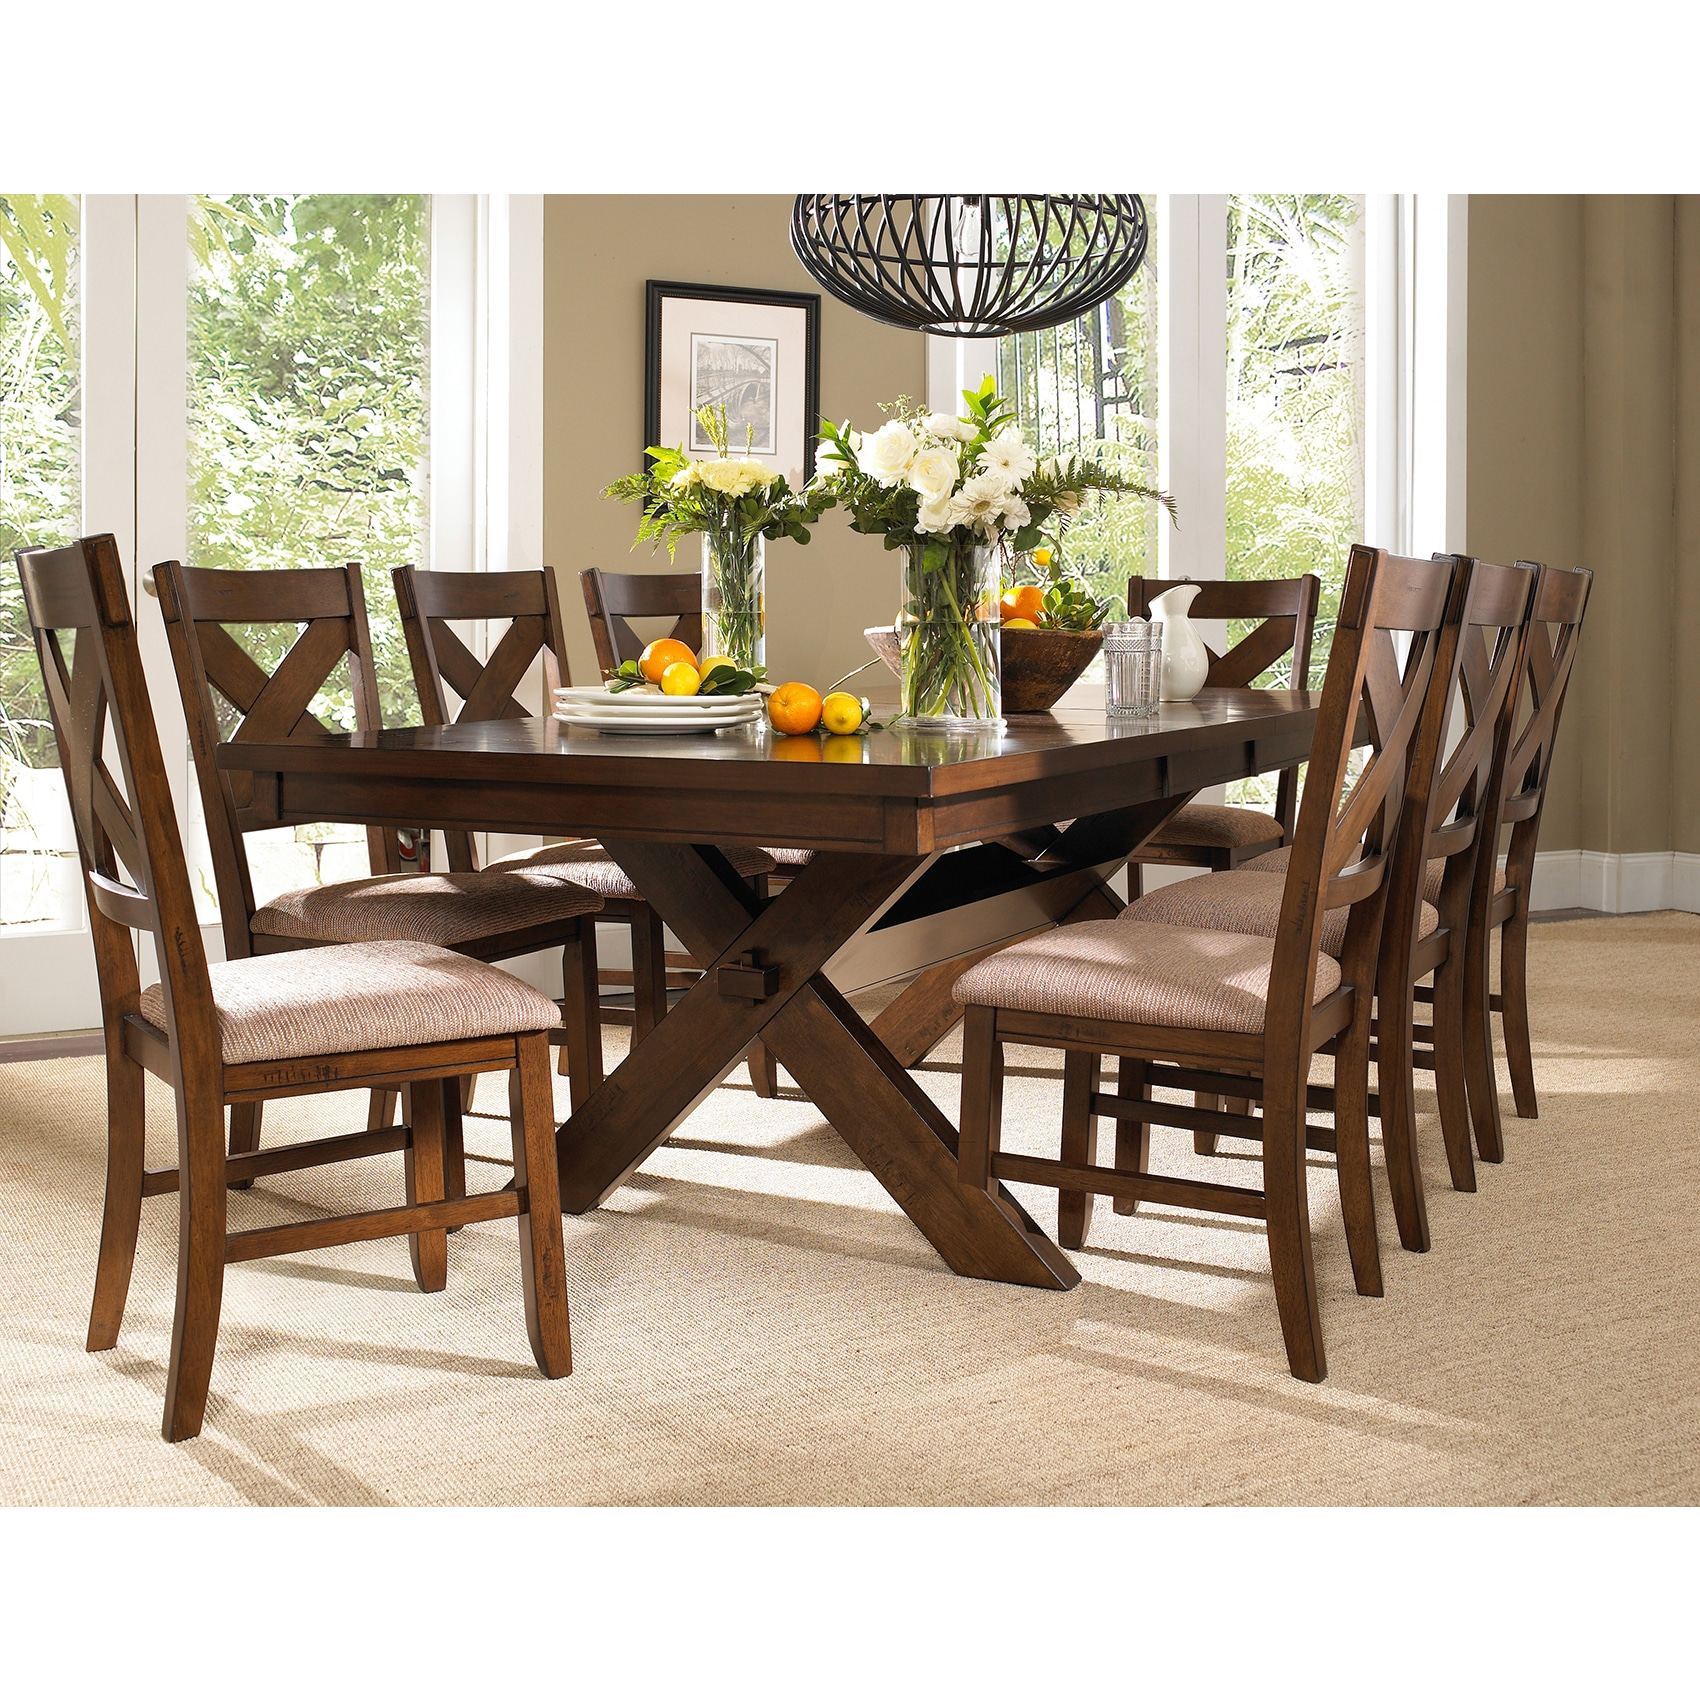 solid oak dining table and chairs office chair yeovil shop 9 piece wood set with 8 free shipping today overstock com 11691458